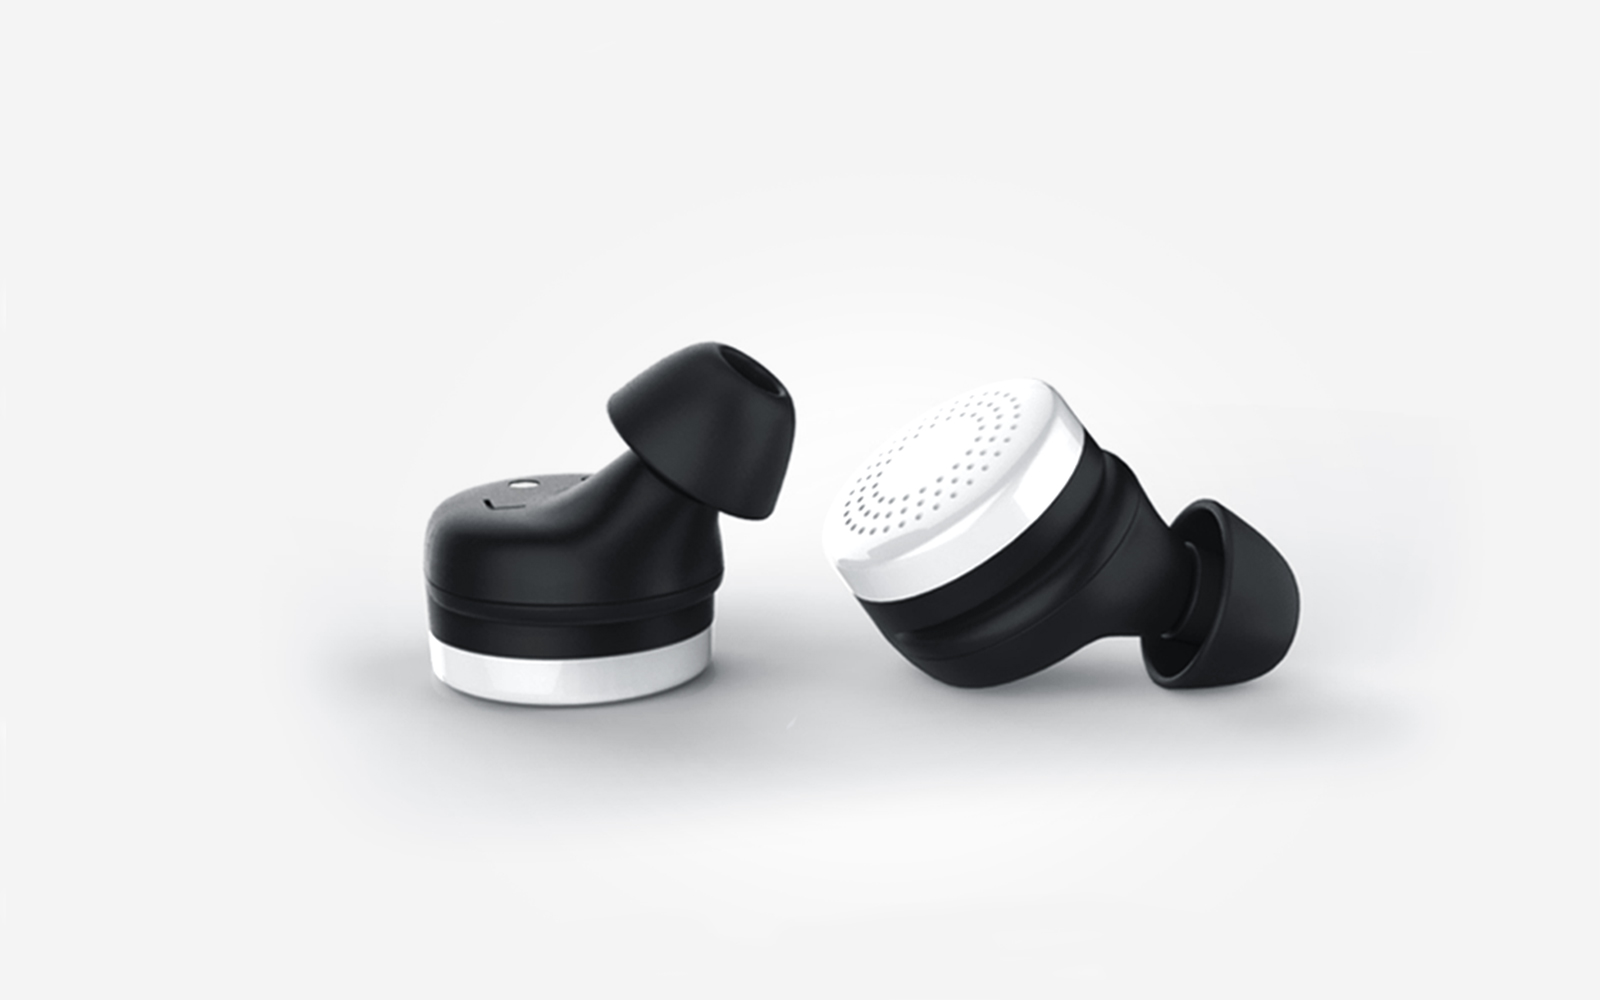 Best Travel Products: Here Active Listening Earbuds